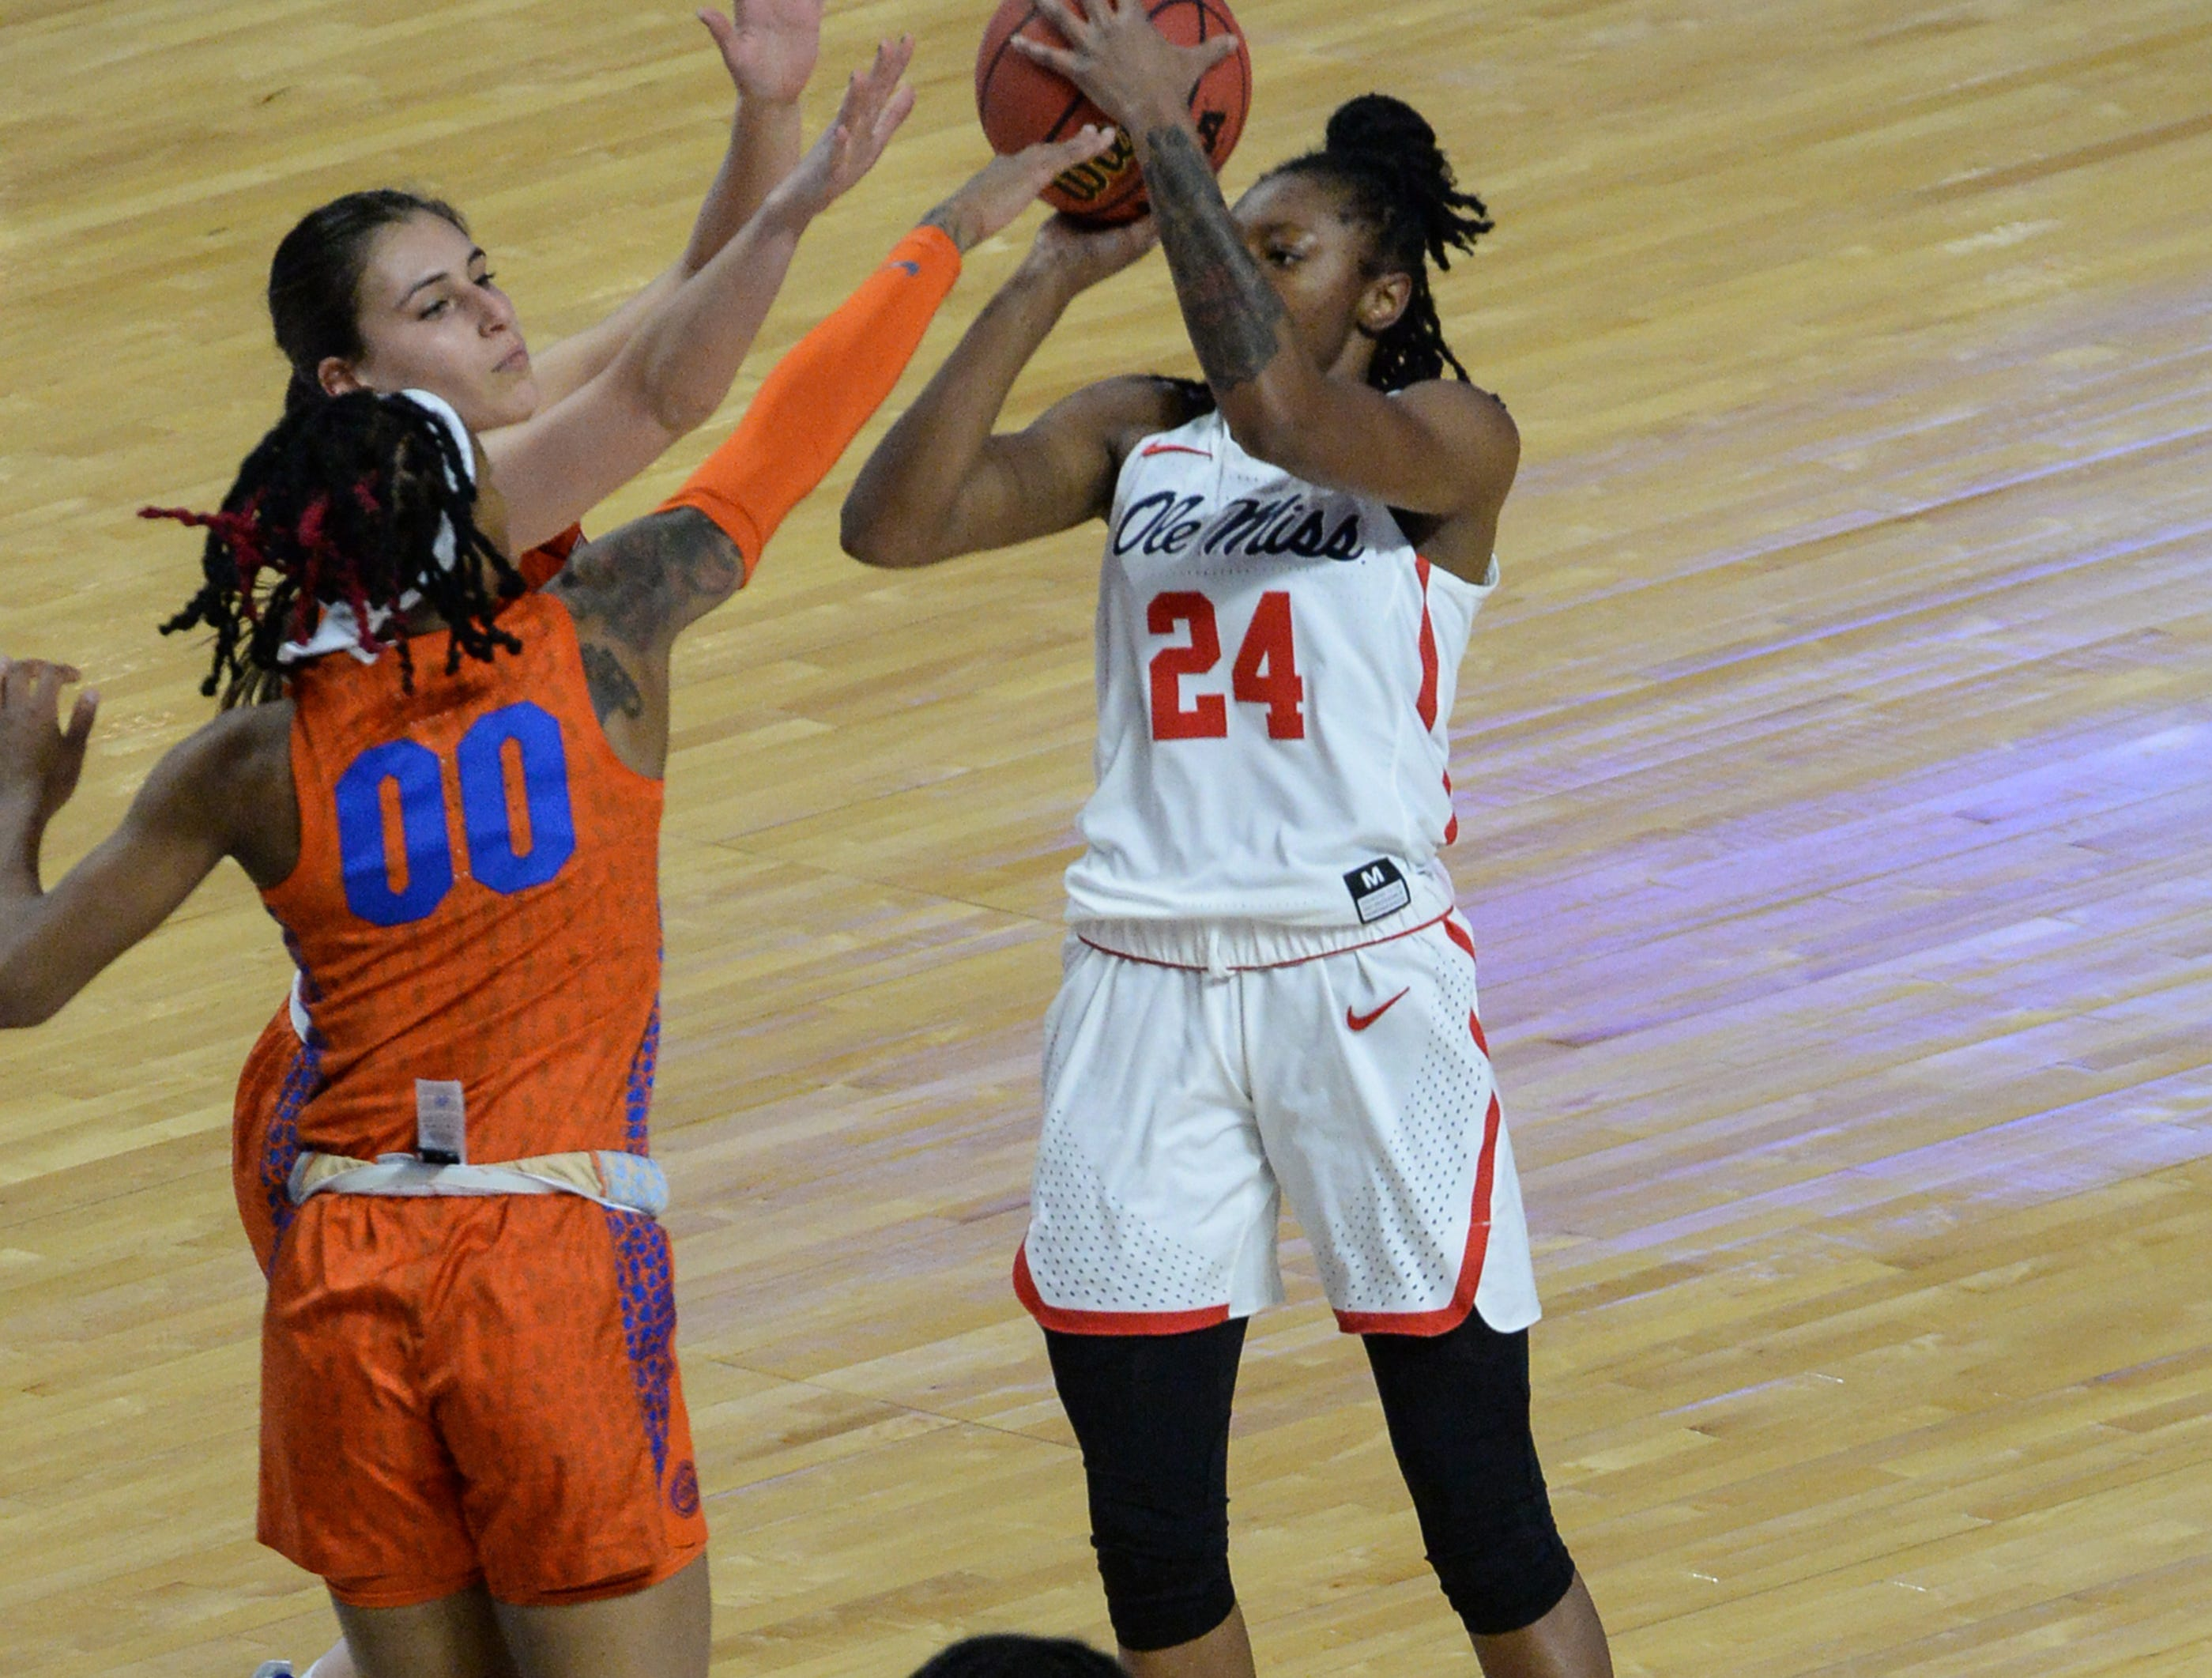 Ole Miss junior Shannon Dozier(24) shoots near Florida guard Delicia Washington(0) during the first quarter of the Southeastern Conference Women's Tournament game at Bon Secour Wellness Arena in Greenville Wednesday, March 6, 2019.